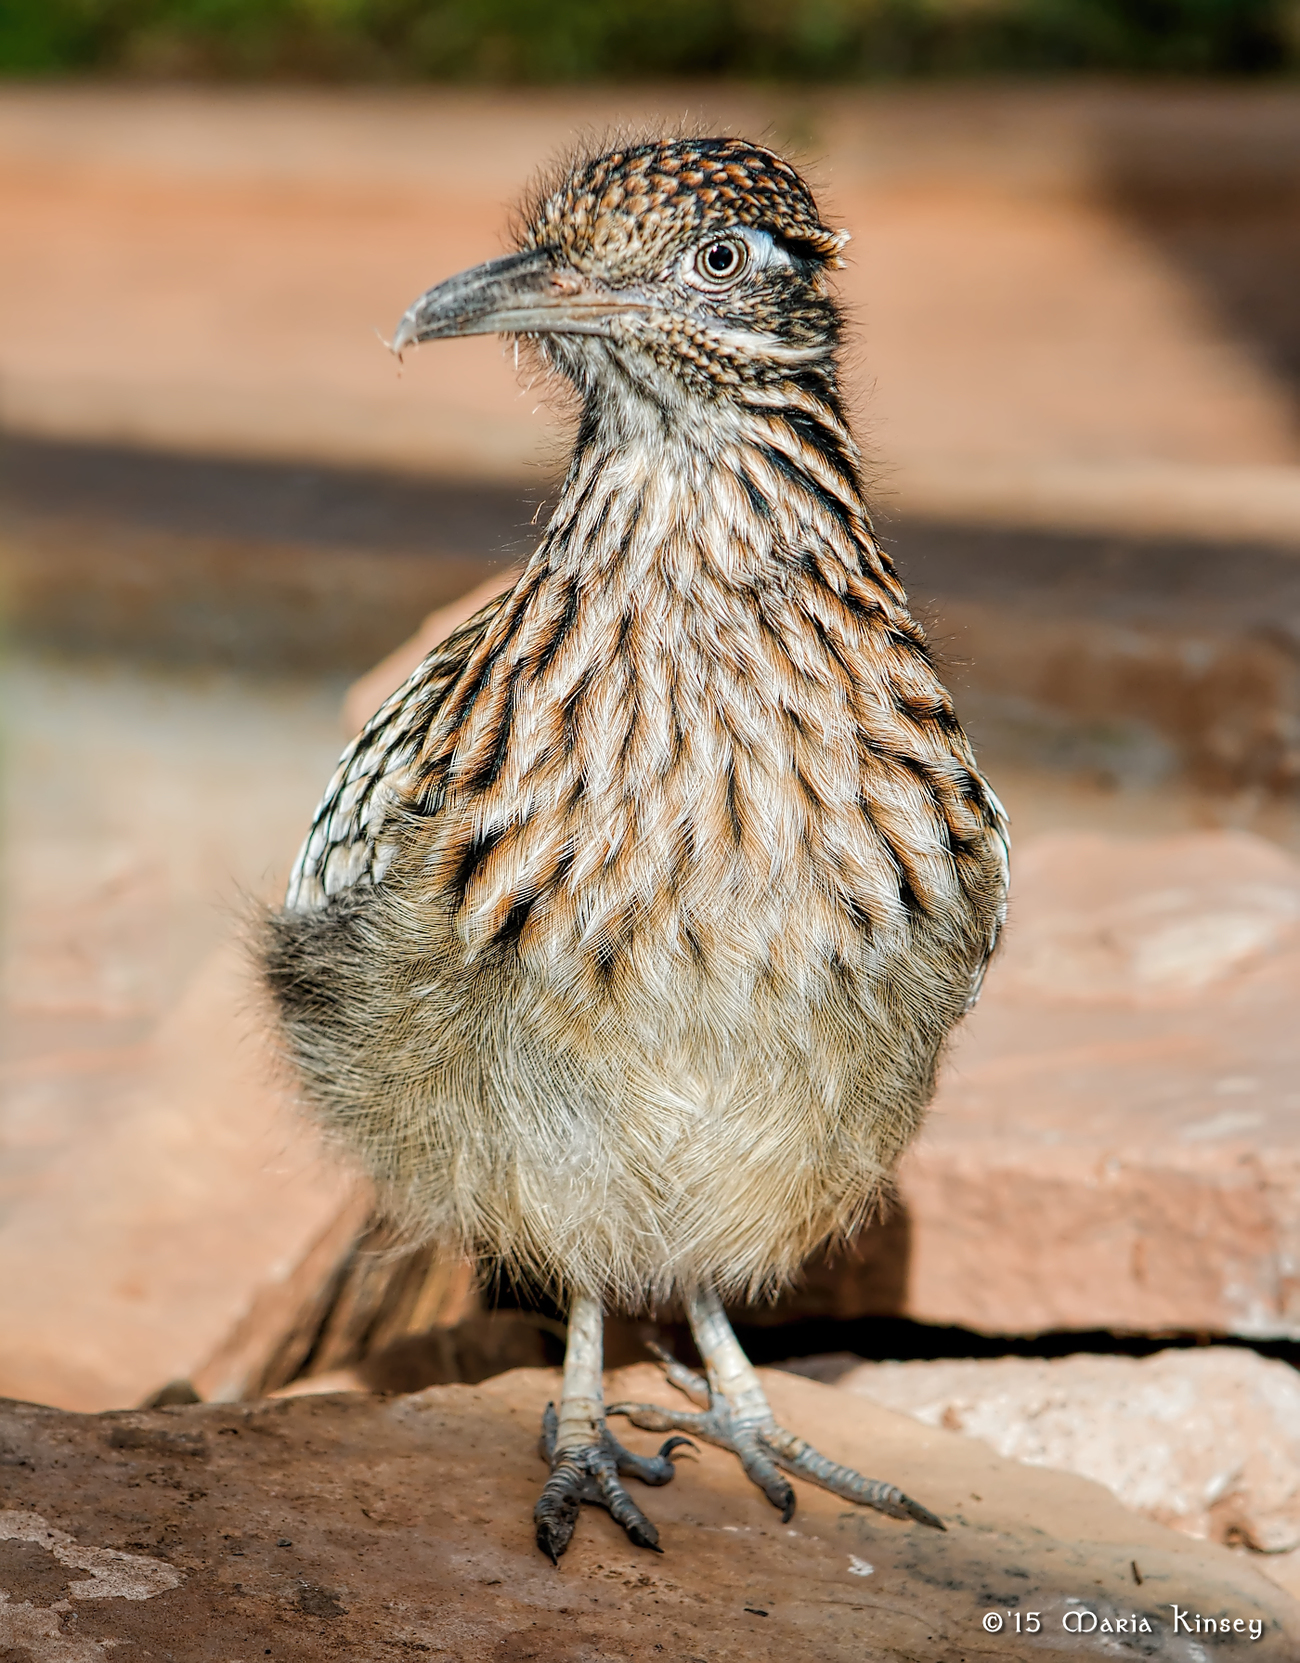 Fluffy Roadrunner by CavalierLady